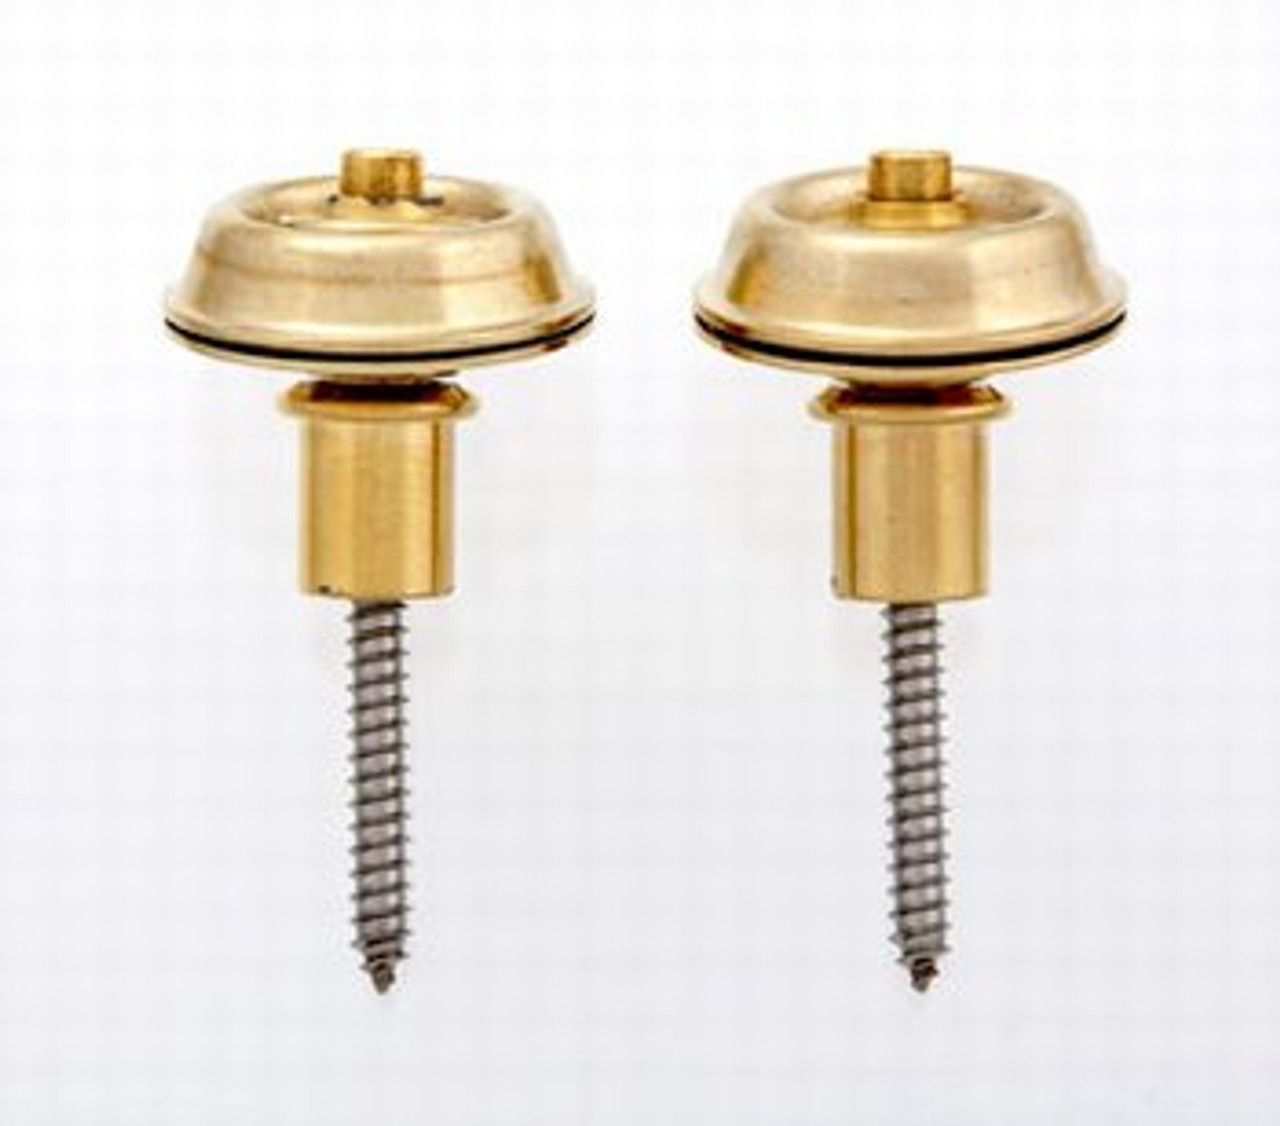 Dunlop Flush Mount Strap Locks - Gold (pair)